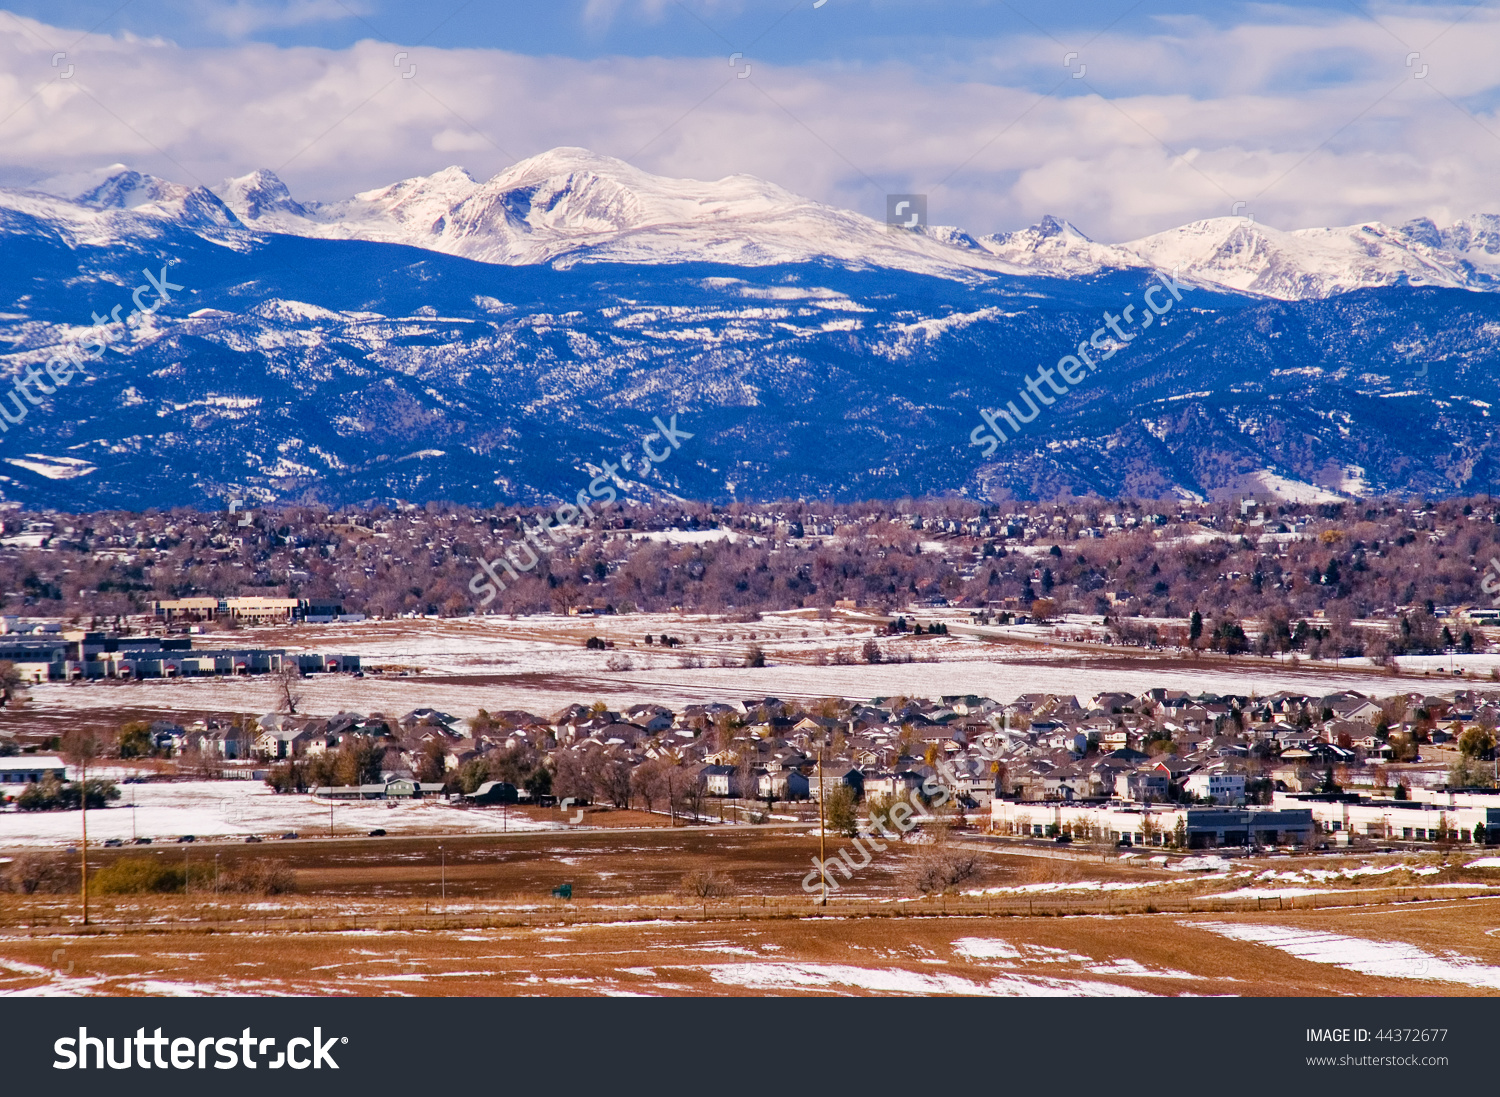 Colorado Front Range Rocky Mountains During Stock Photo 44372677.